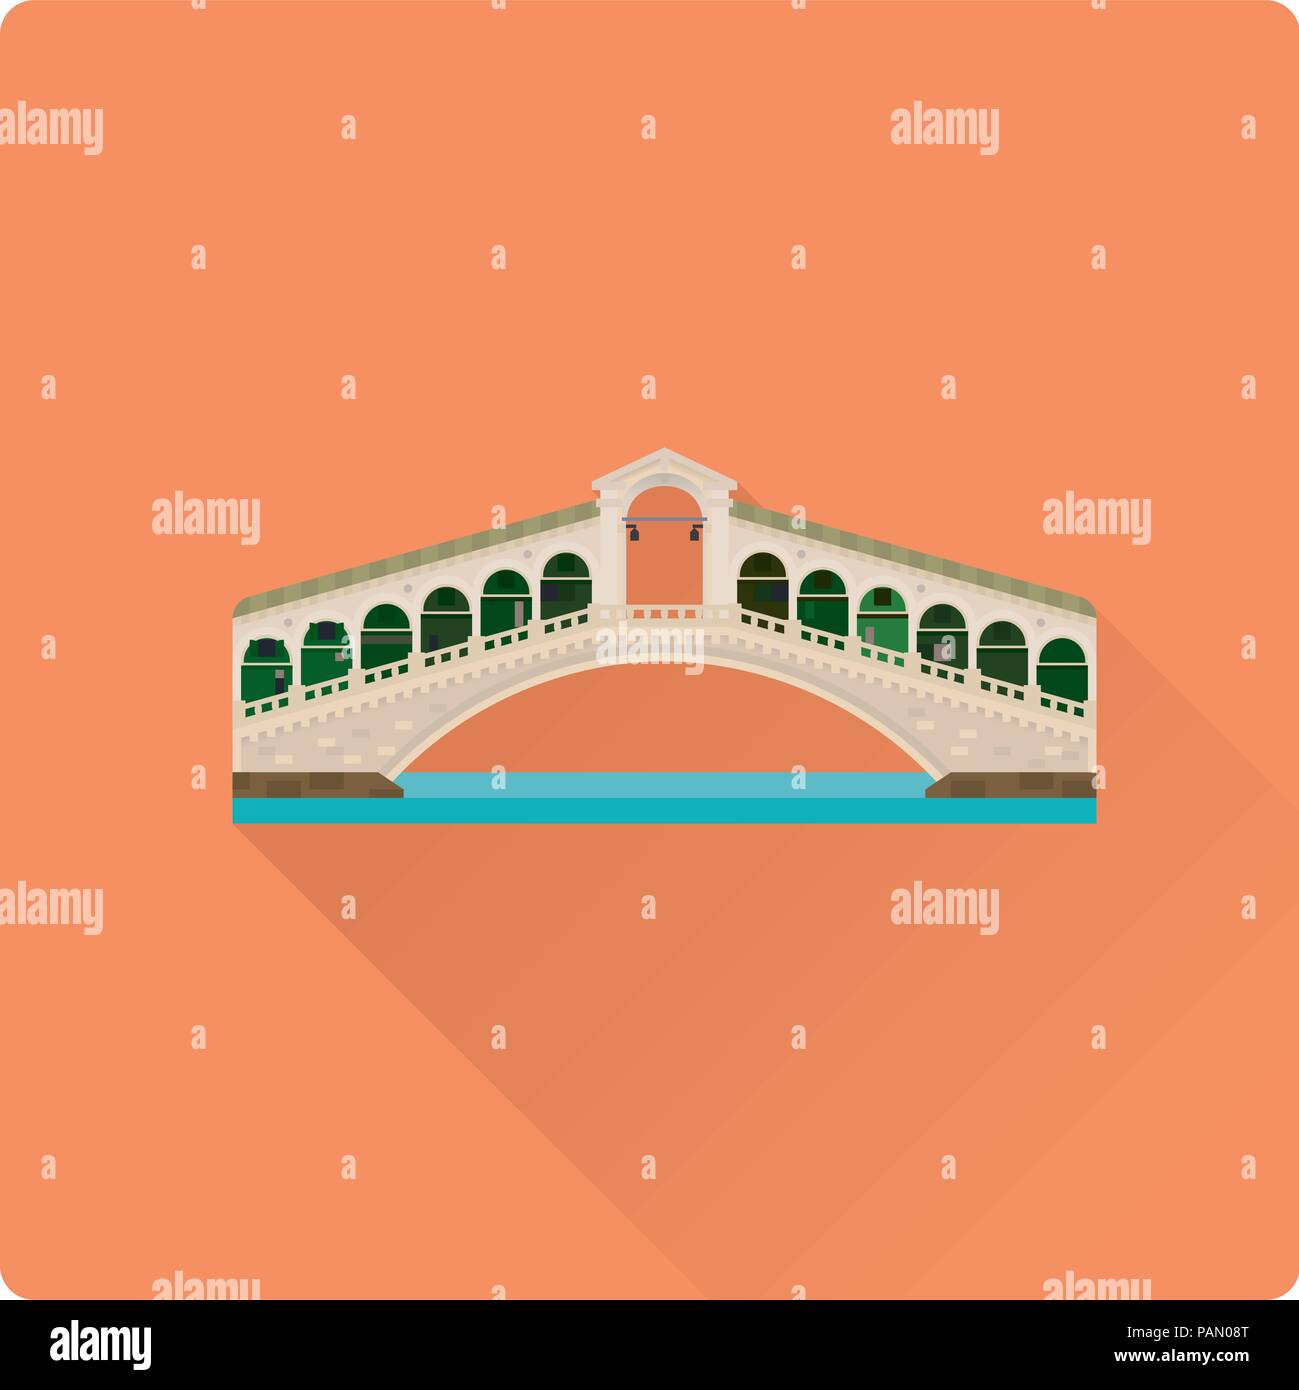 Flat design long shadow vector illustration of Rialto Bridge over Grand Canal at Venice, Italy - Stock Vector